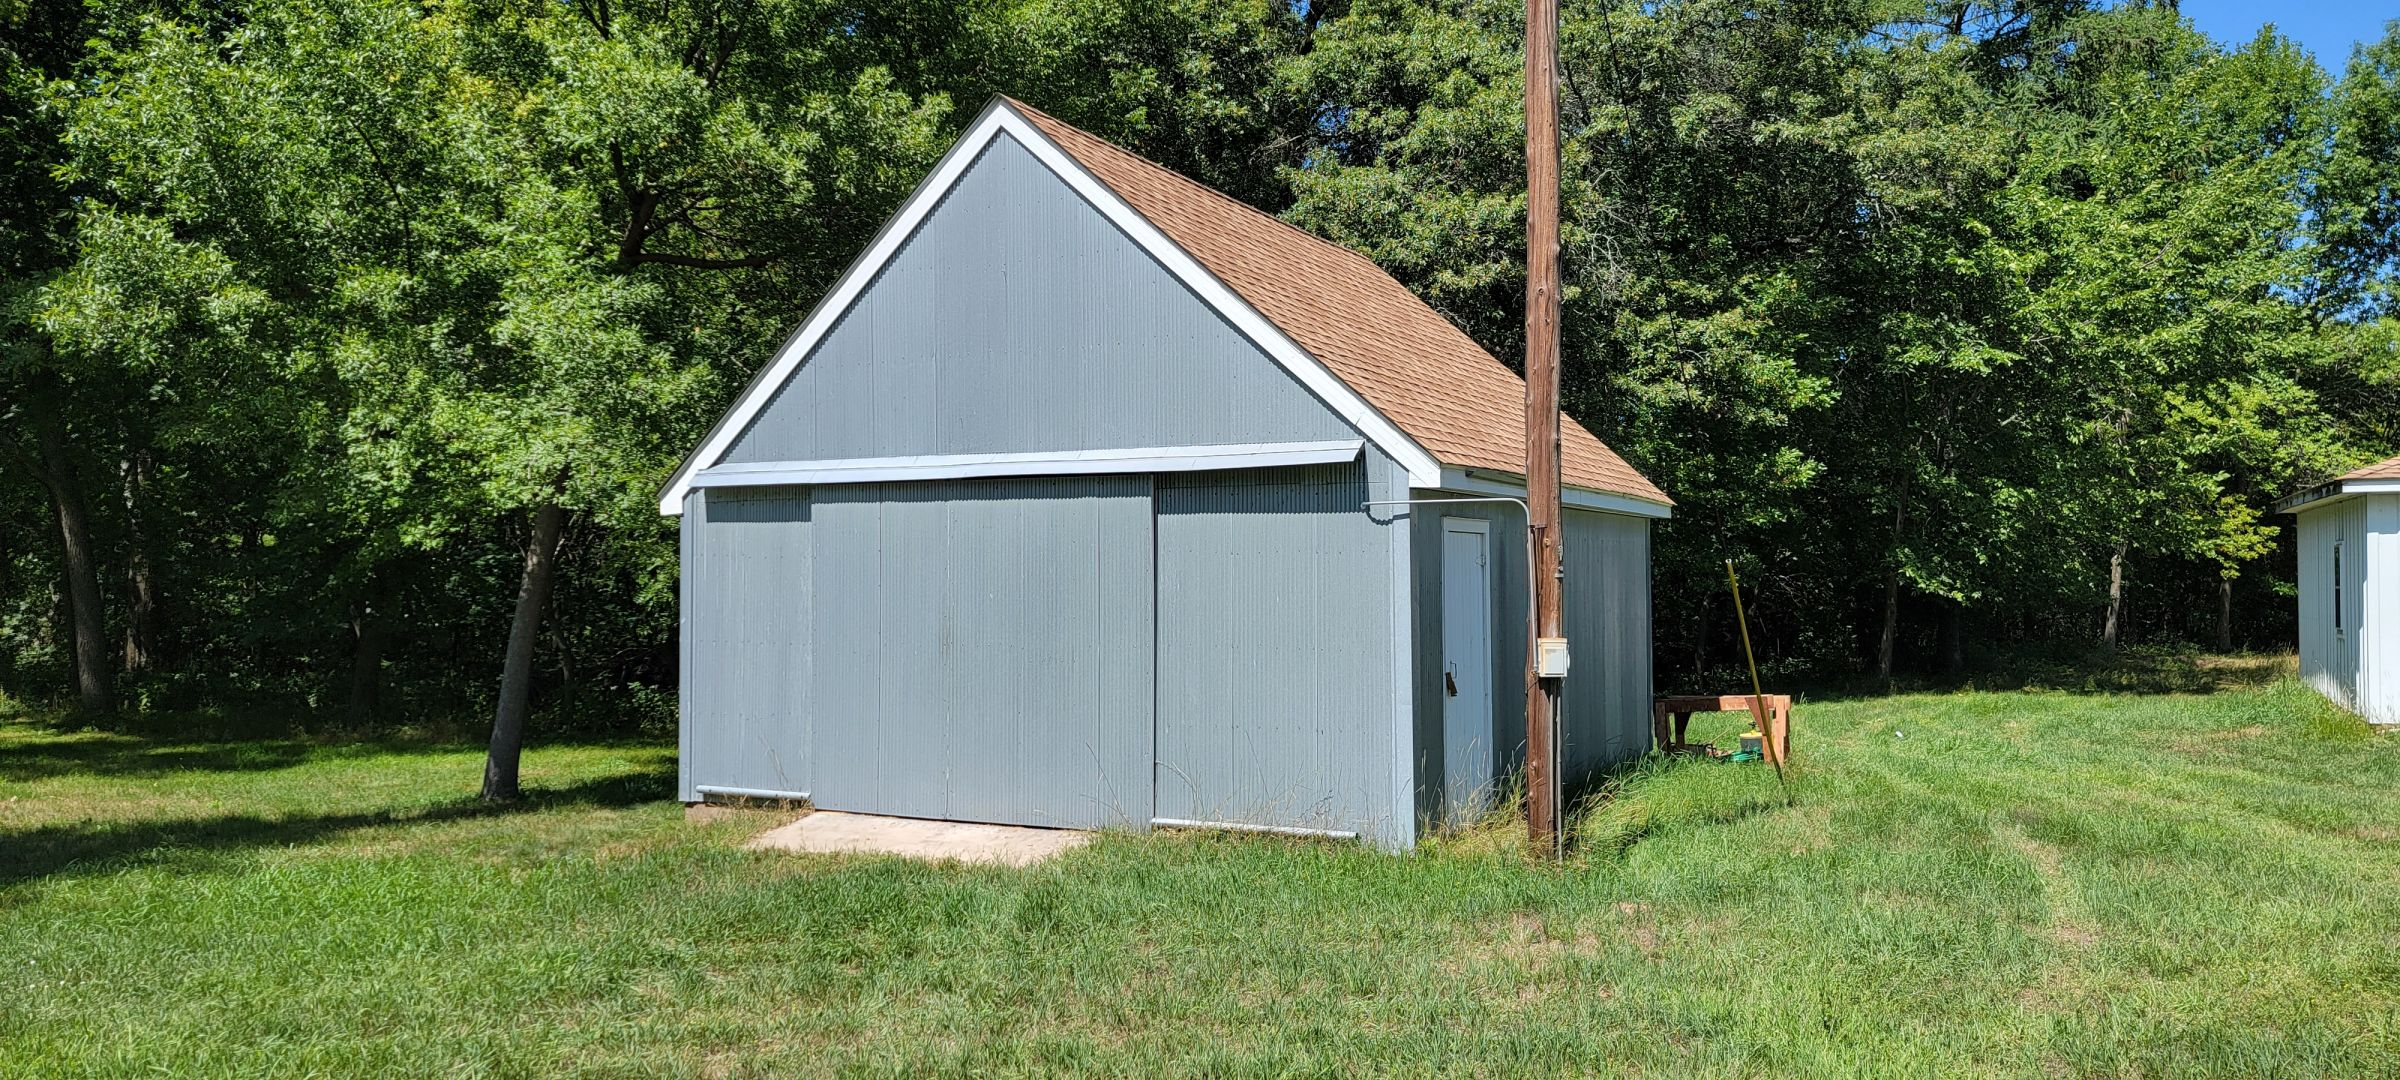 20' x 22' shed